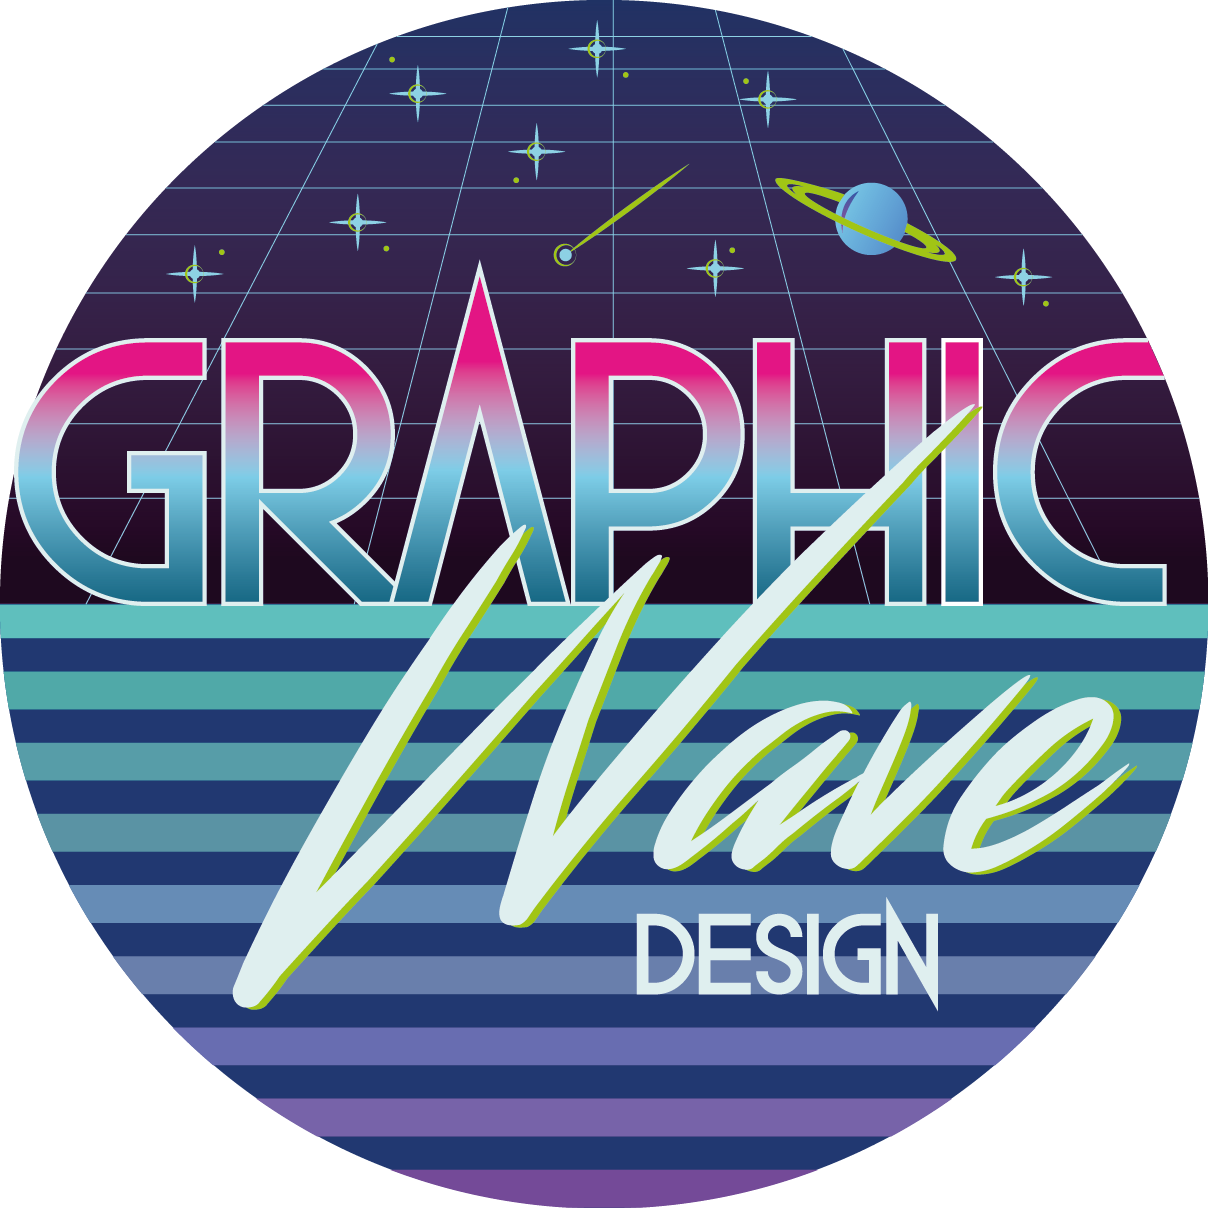 GraphicWaveDesign on Twitter: